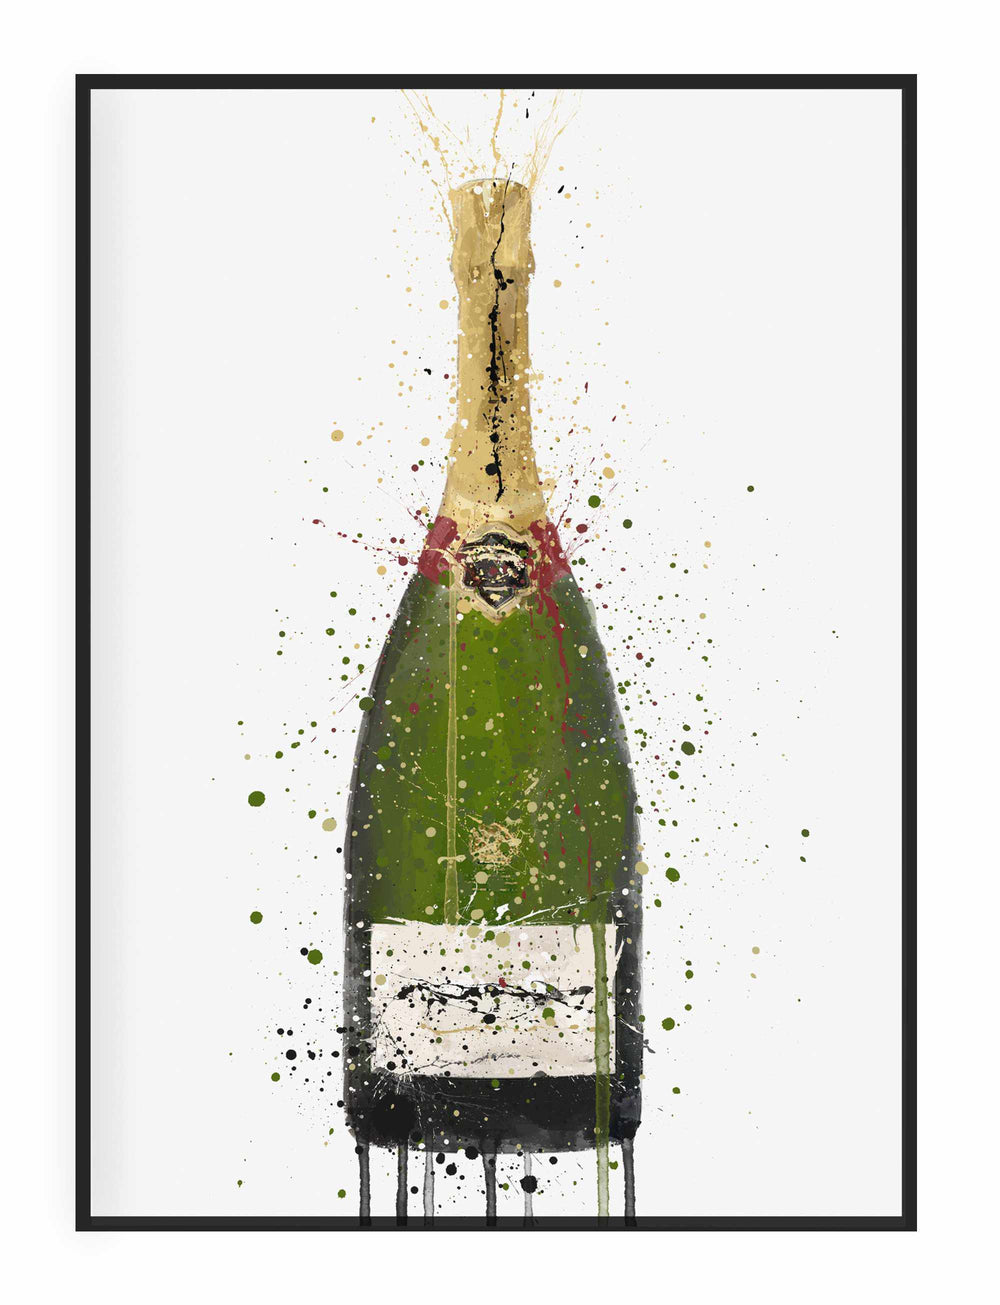 Champagne Bottle Wall Art Print 'Olive Green'